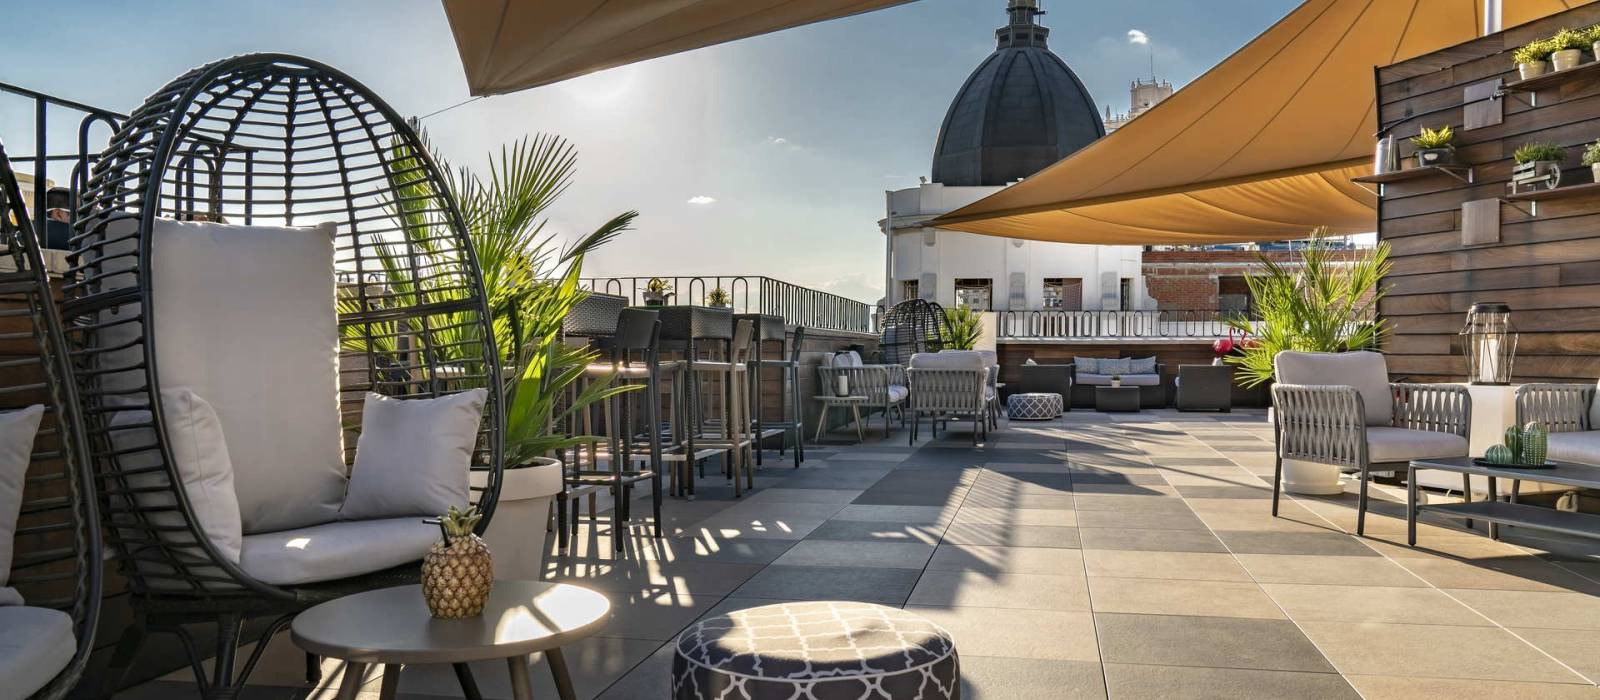 Terrazza Roof 66 - Hotel Madrid Via 66